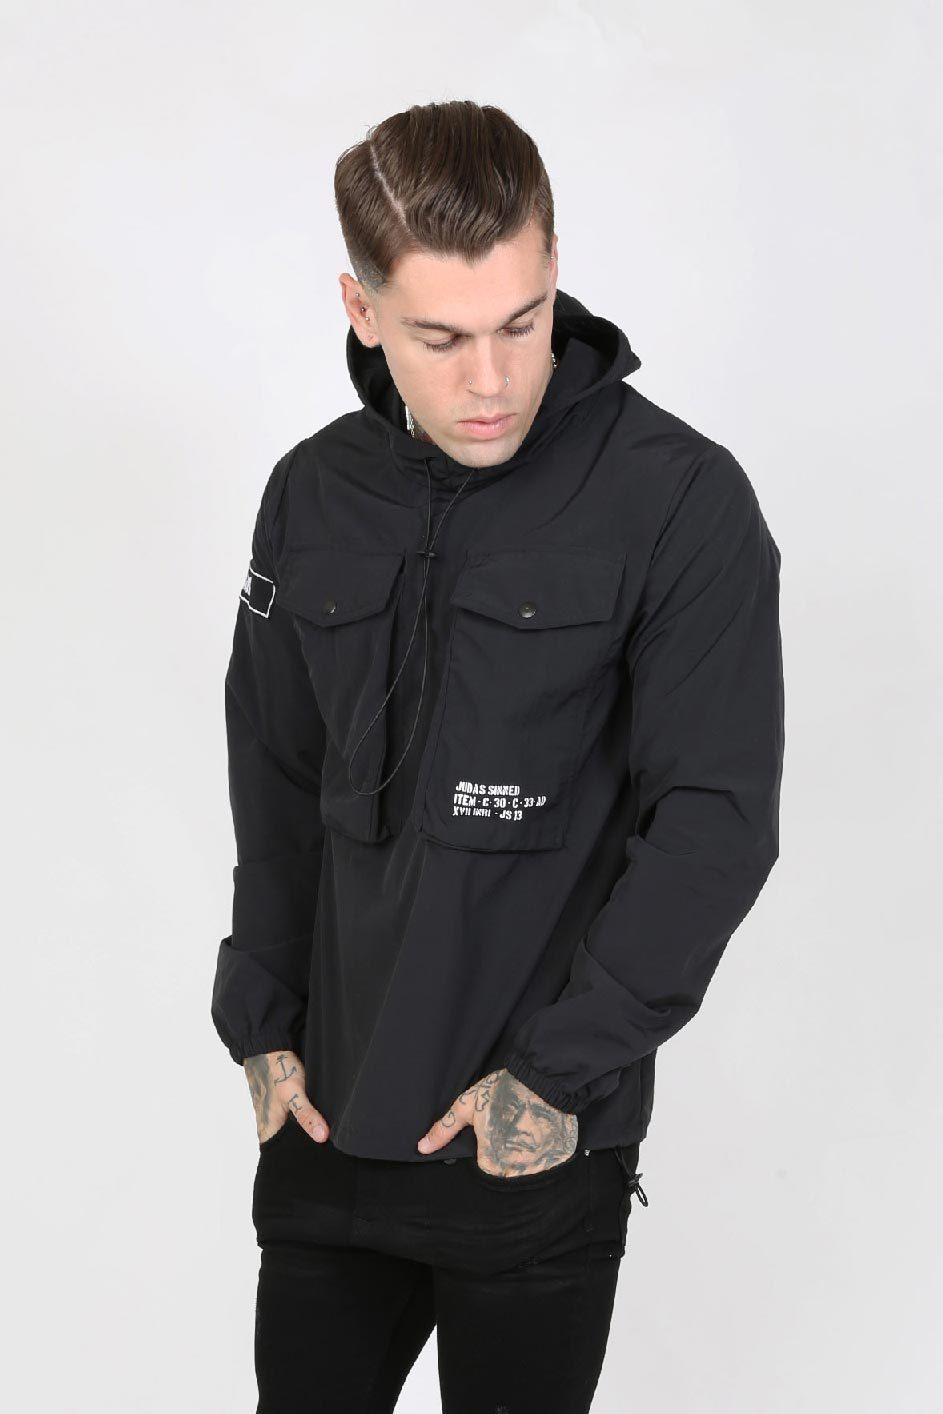 Judas Sinned Ghost Nylon Overhead Utility Pocket Men's Hoodie - Black - Judas Sinned Clothing